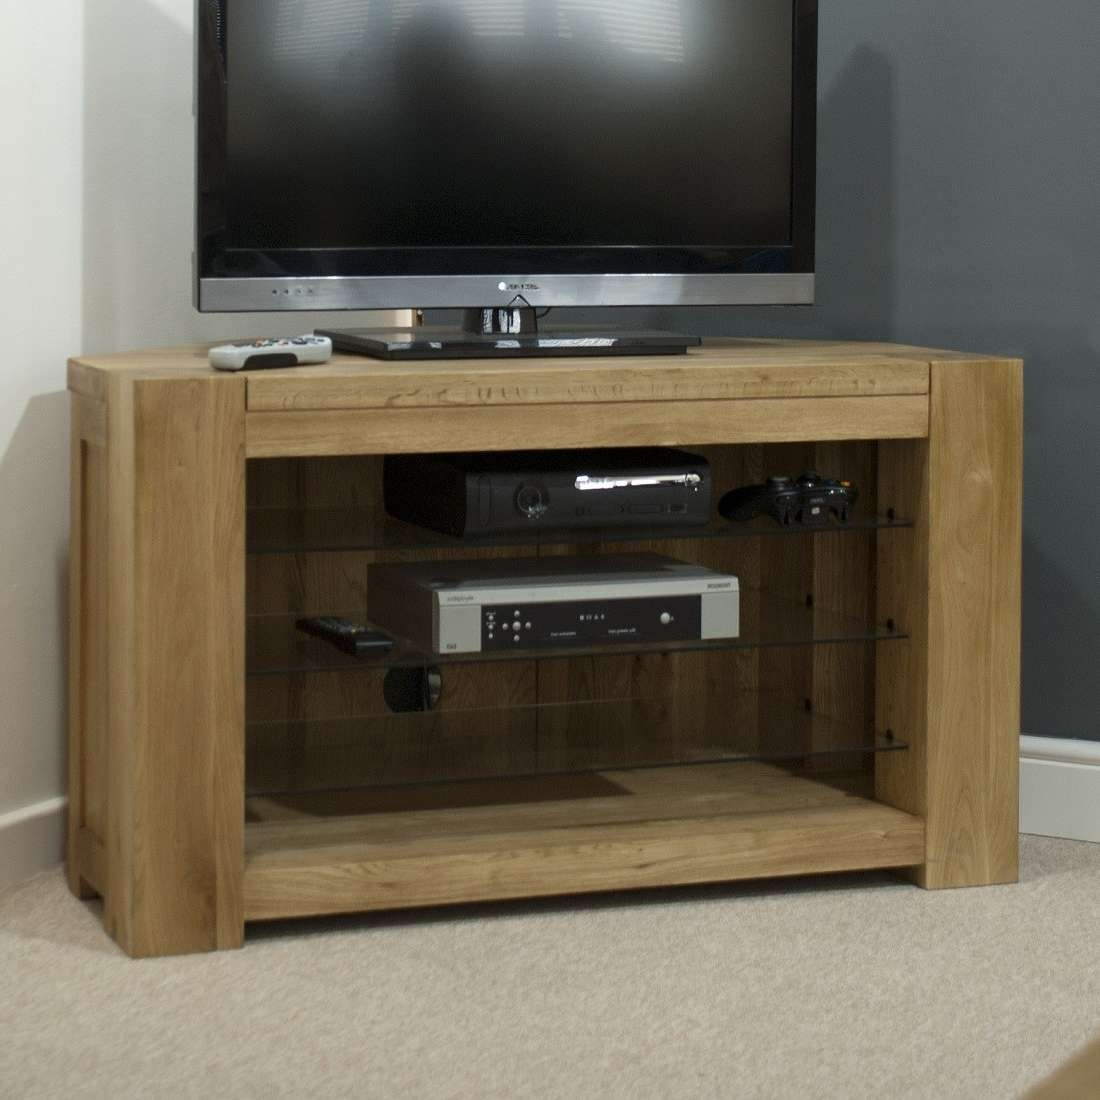 Trend Solid Oak Corner Tv Unit | Oak Furniture Uk With Regard To Dark Wood Corner Tv Cabinets (View 16 of 20)